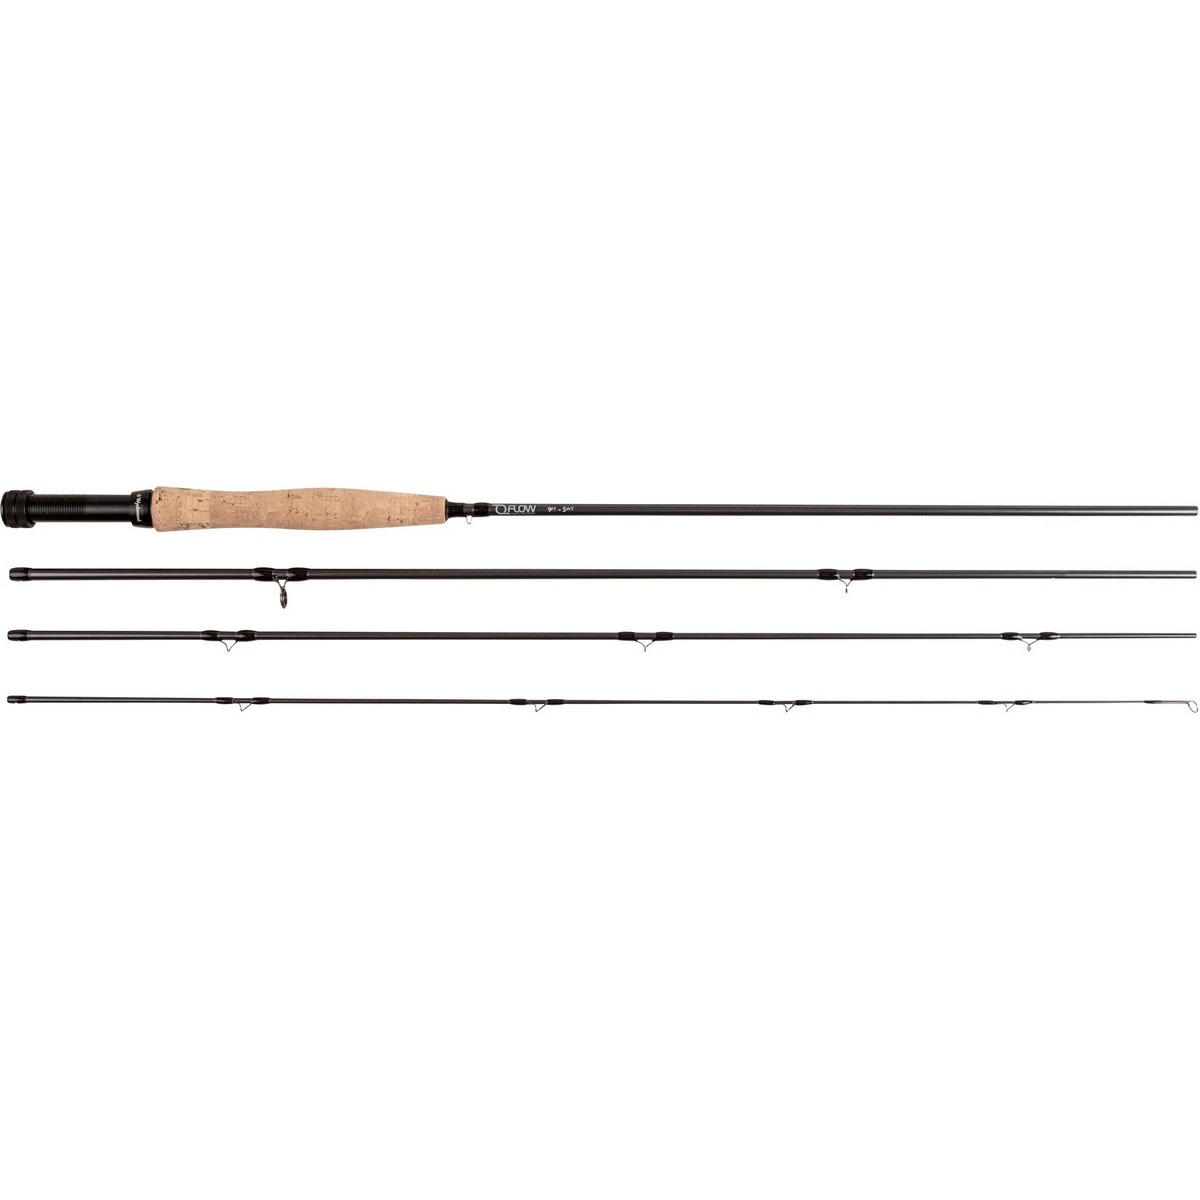 Wychwood Muškařský prut Flow Fly Rod 9ft, #5